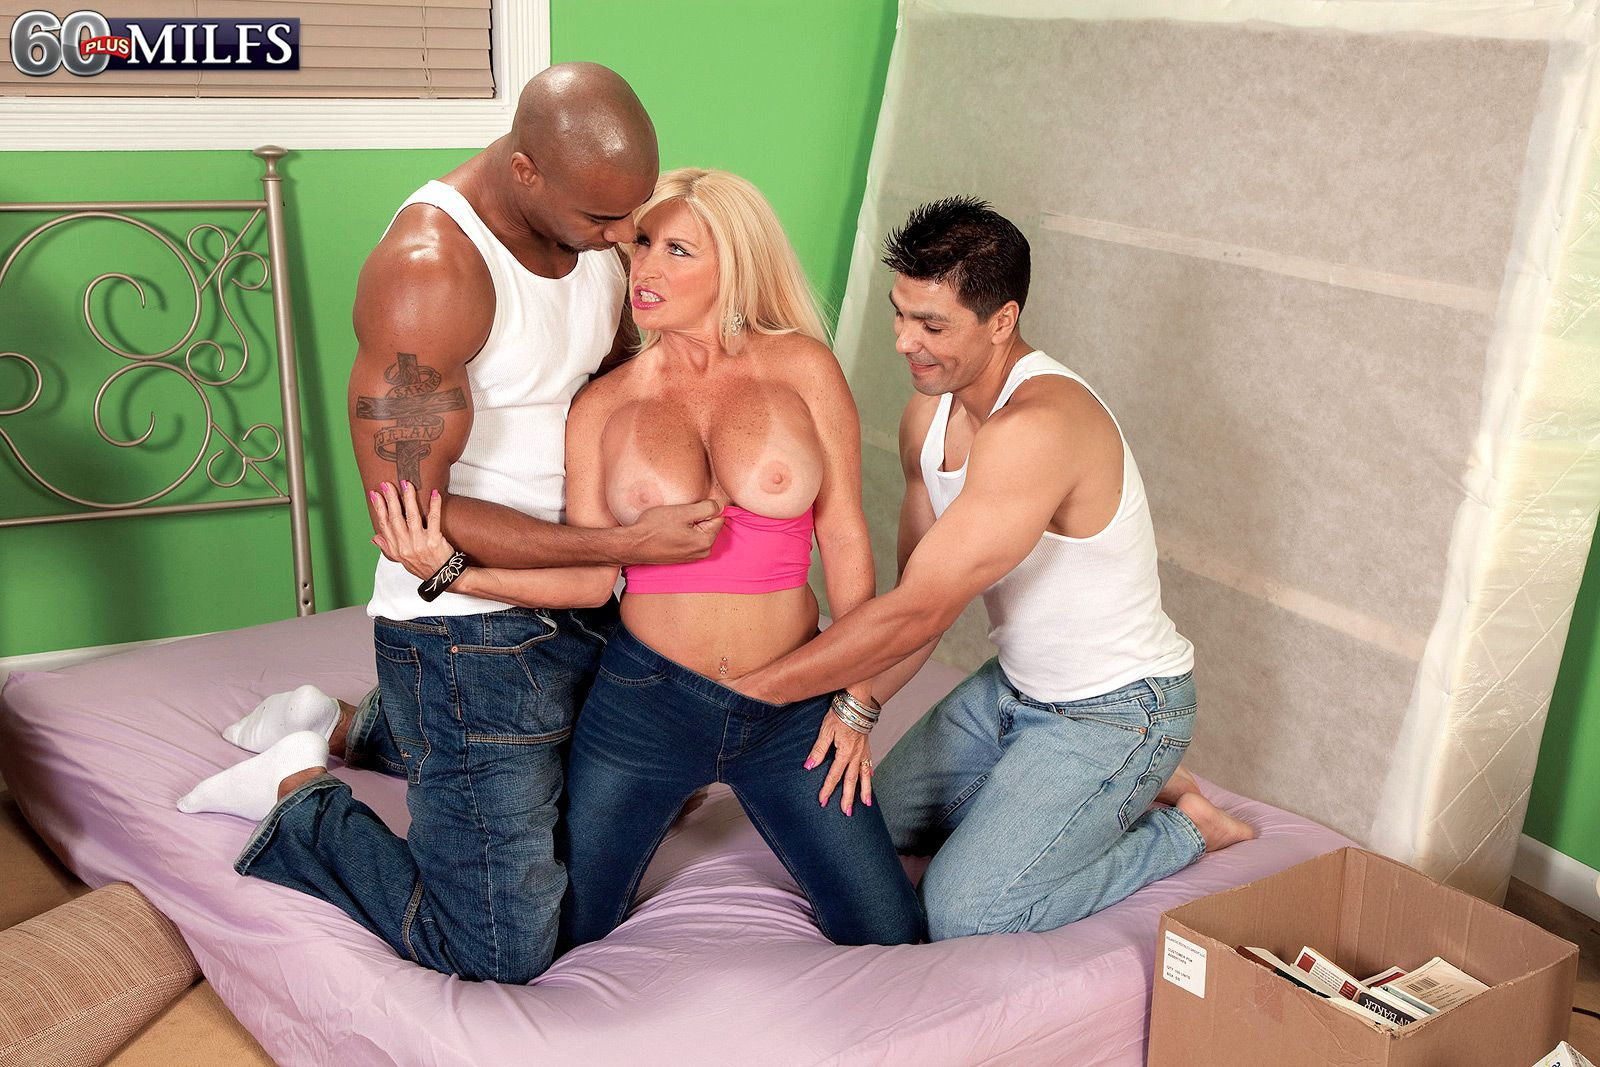 Hot over 60 nude model and pornstar has her great tits exposed by 2 younger guys